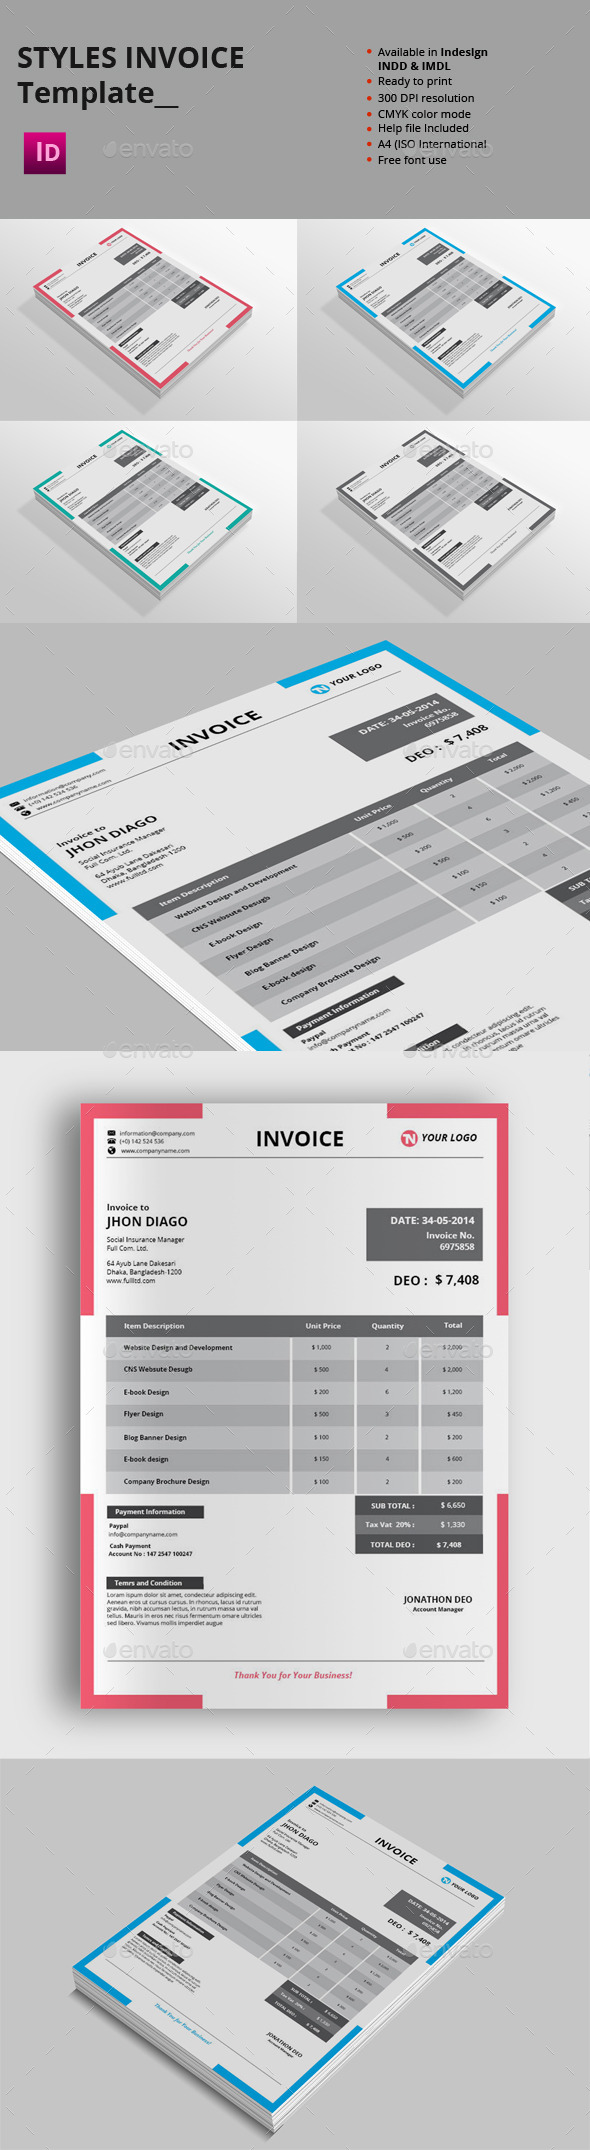 GraphicRiver Styles Invoice Templates 8981799